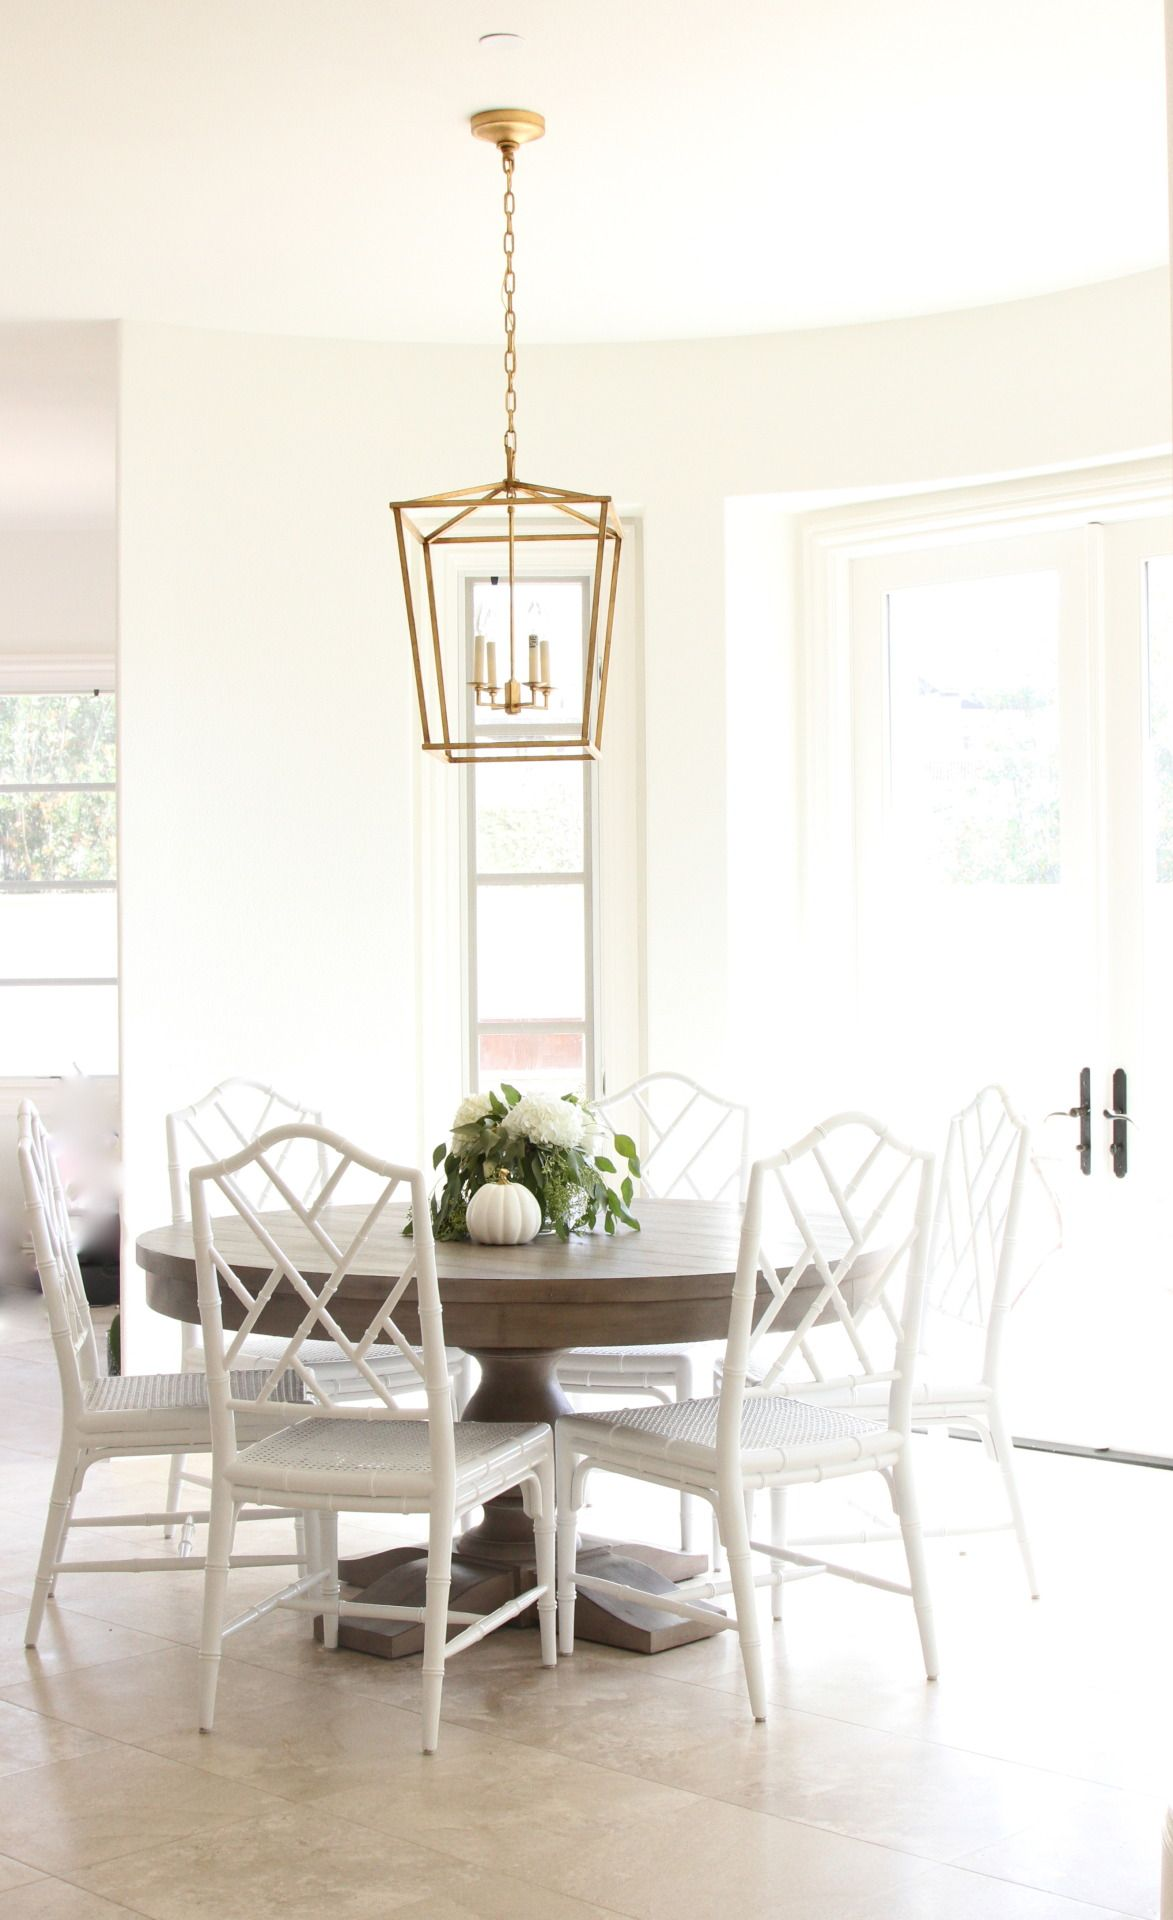 dining space with gold lantern light fixture ballard designs bamboo